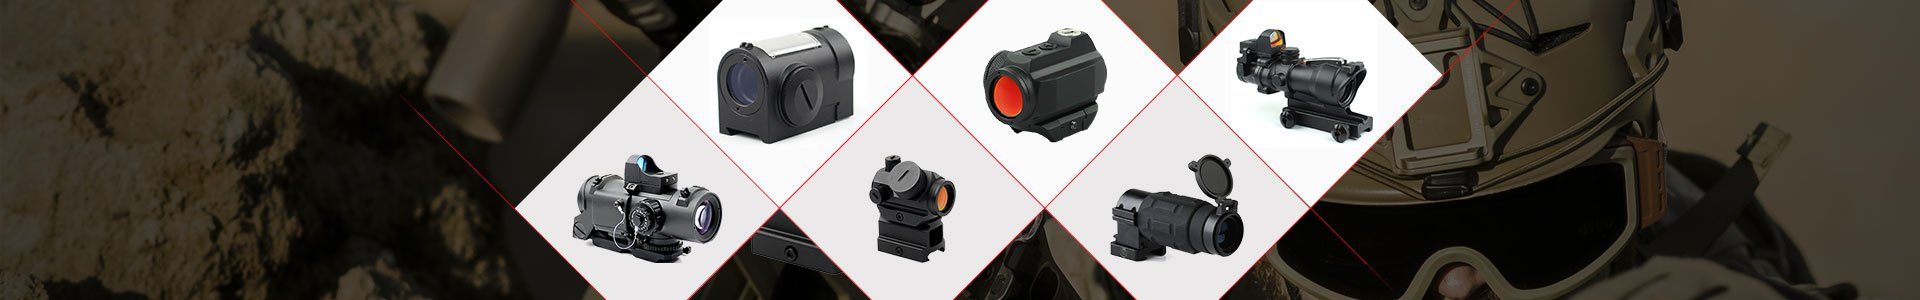 Long Xiang Optics-Product | Find Scope With Reflex Sight On Long Xiang Optics